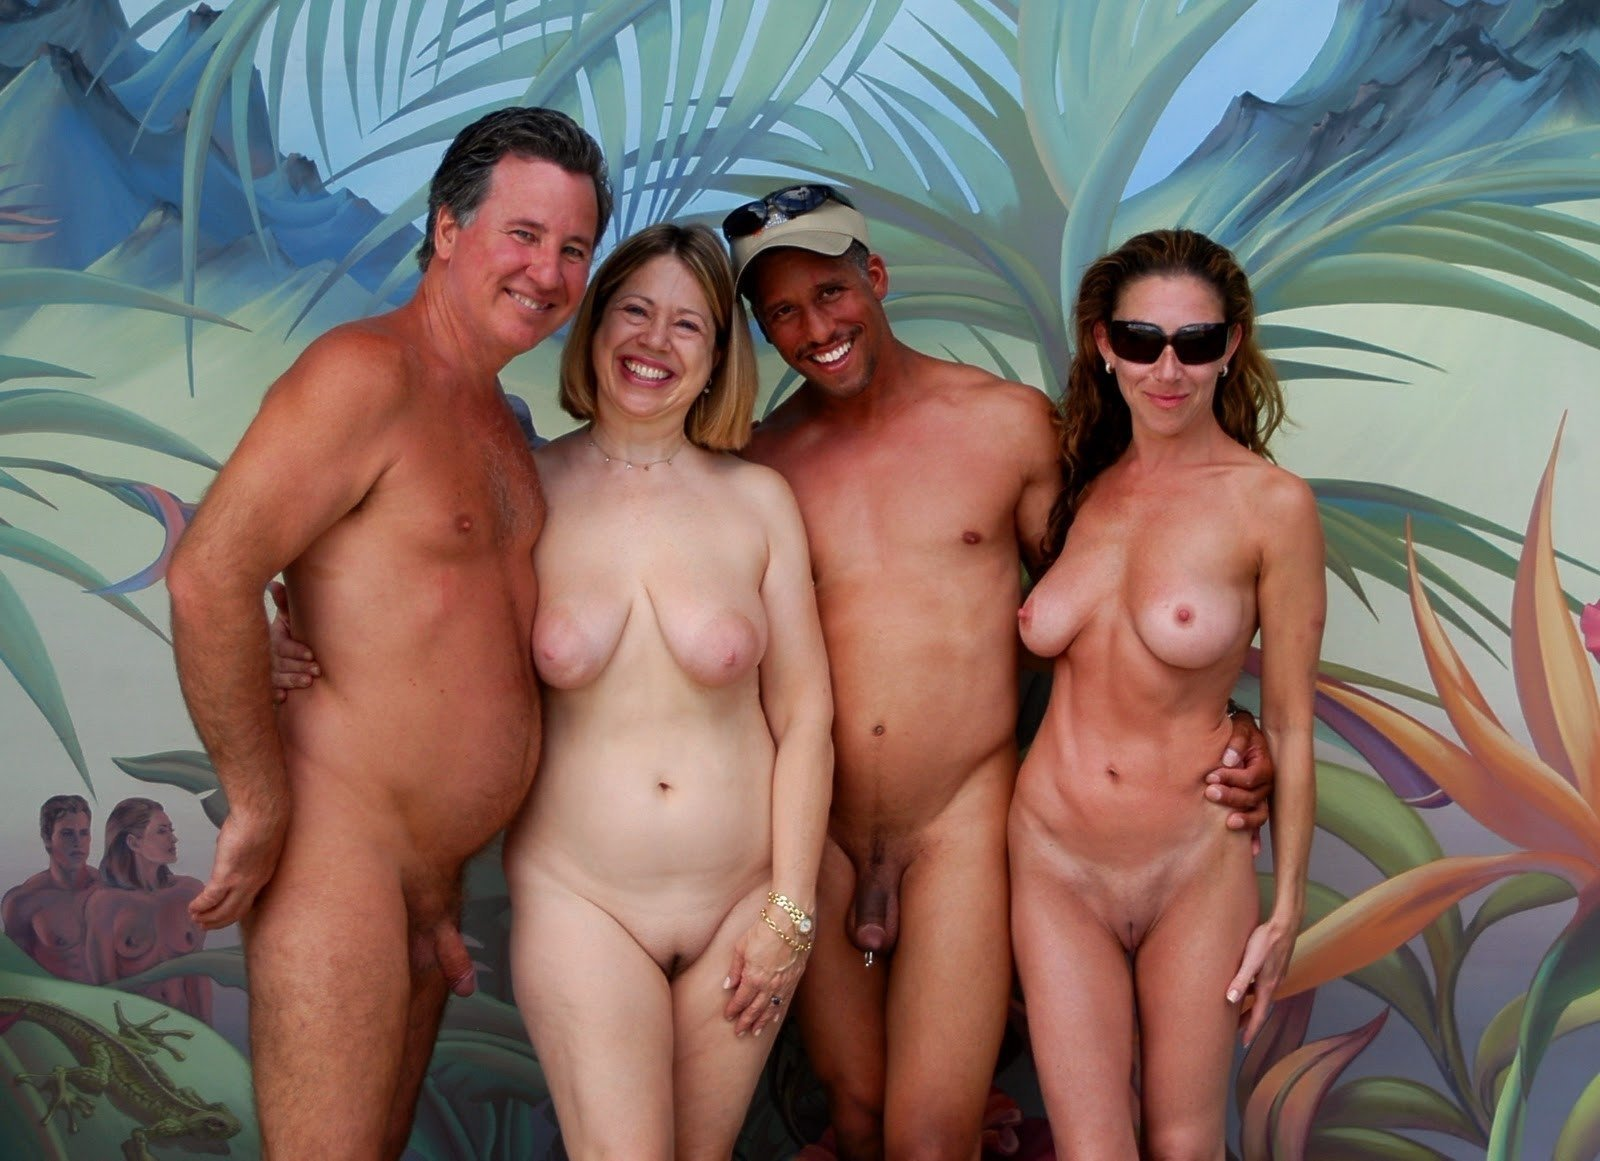 Topless woman photobombs family's vacation pics